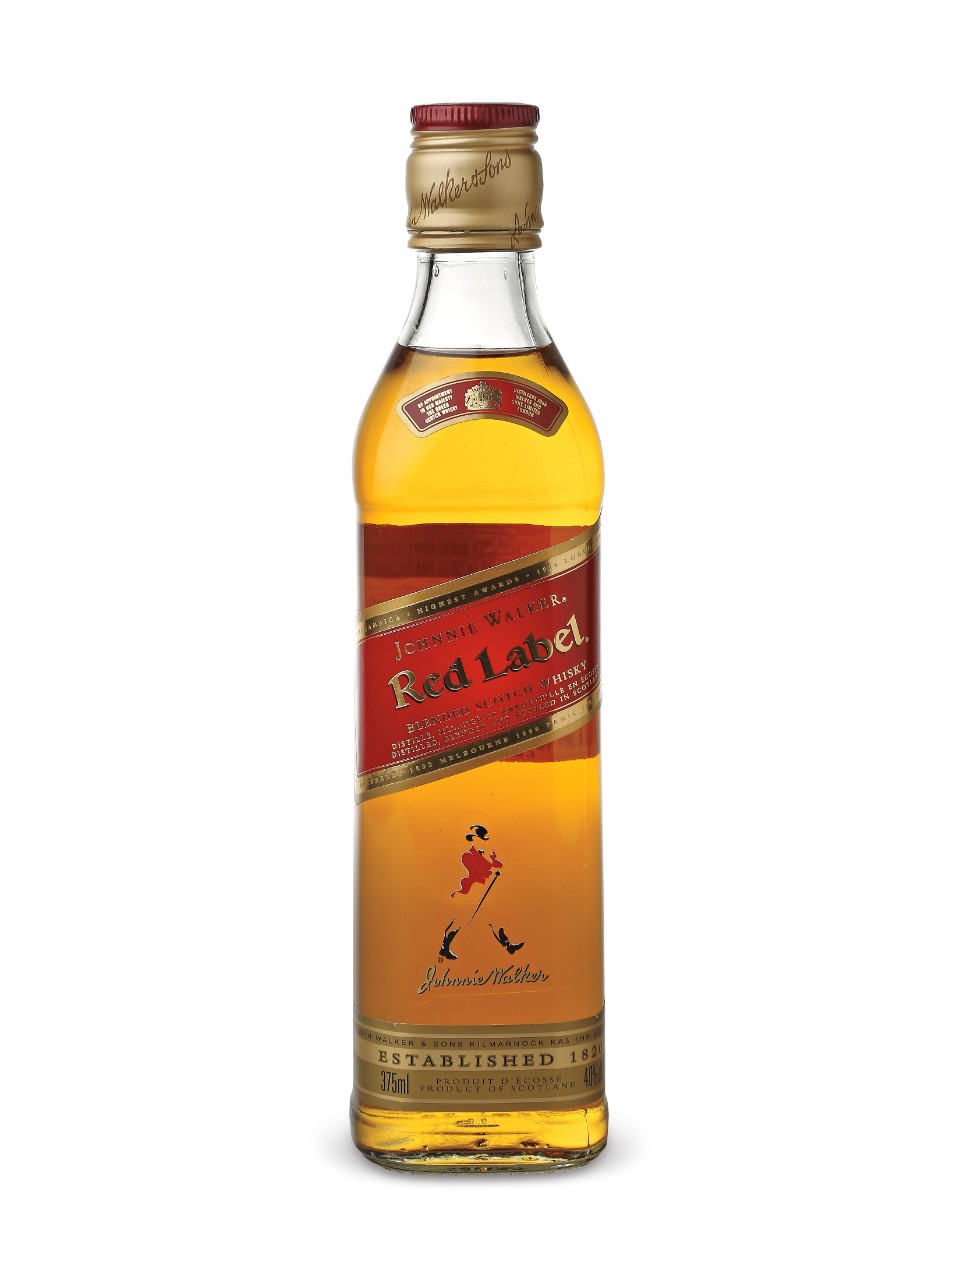 Johnnie Walker Red Label Scotch Whisky from LCBO